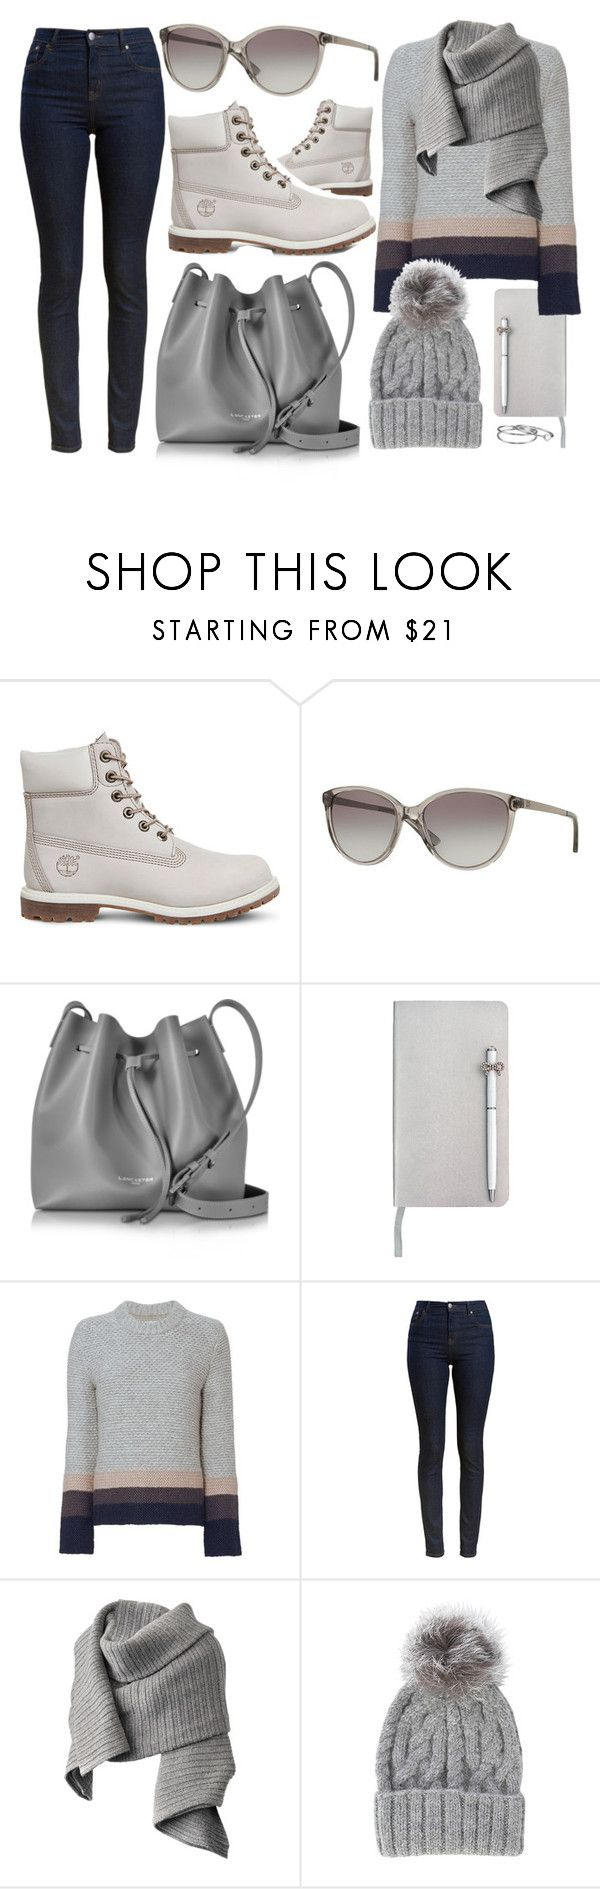 """Winter Casual"" by smartbuyglasses ❤ liked on Polyvore featuring Timberland, DKNY, Lancaster, ICE London, Brochu Walker, Barbour, Acne Studios, Eugenia Kim, Gorjana and casual"